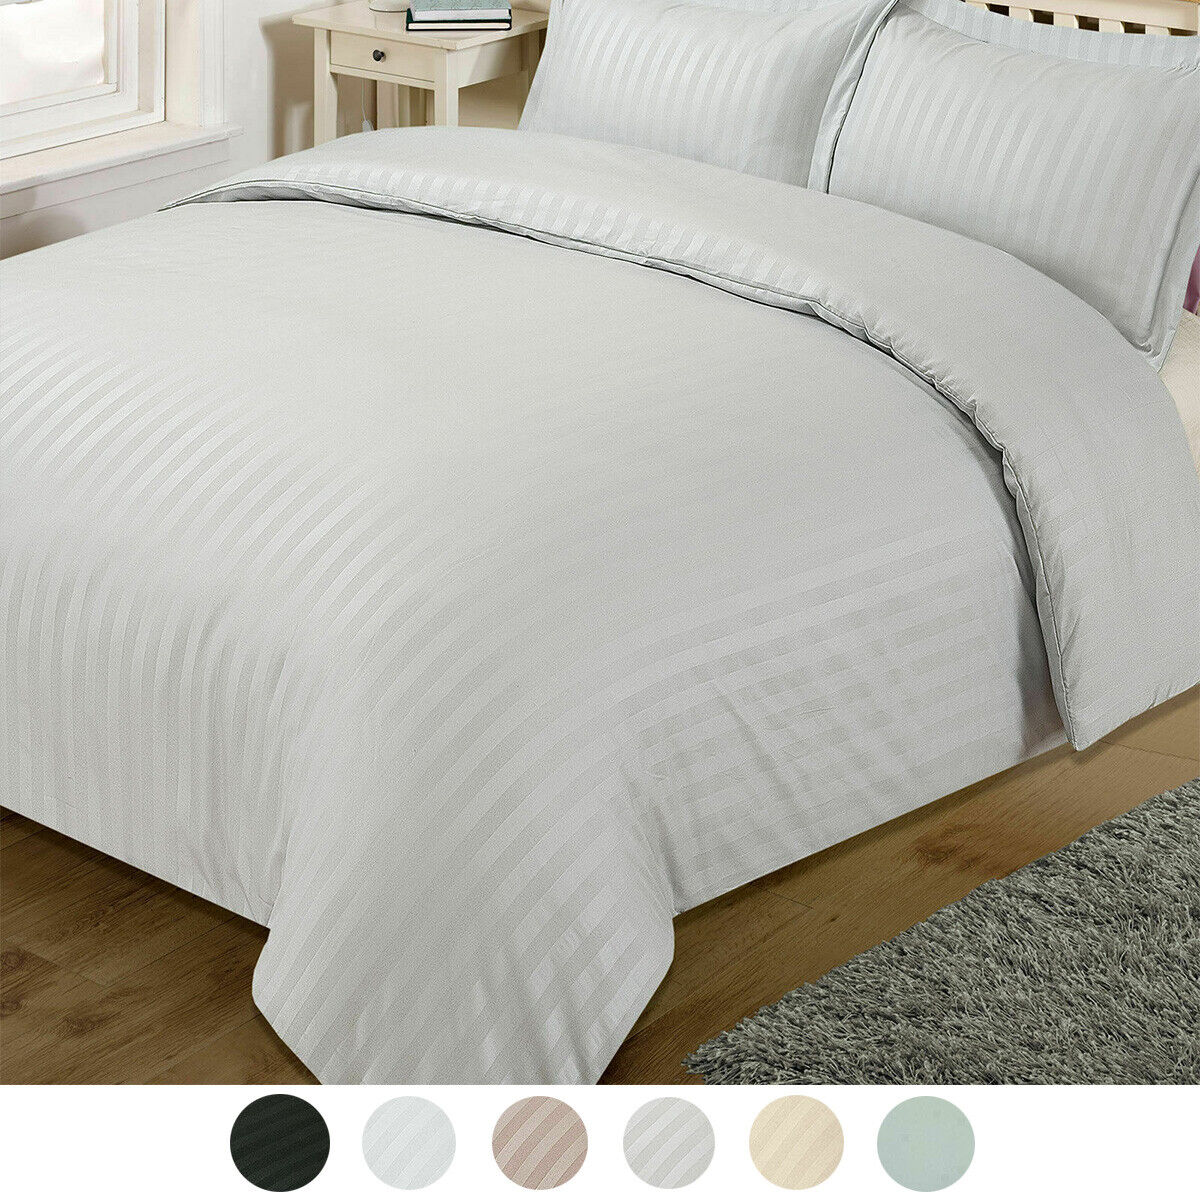 Striped Satin Duvet Cover Quilt Bedding Set With Pillowcases Single Double King Ebay